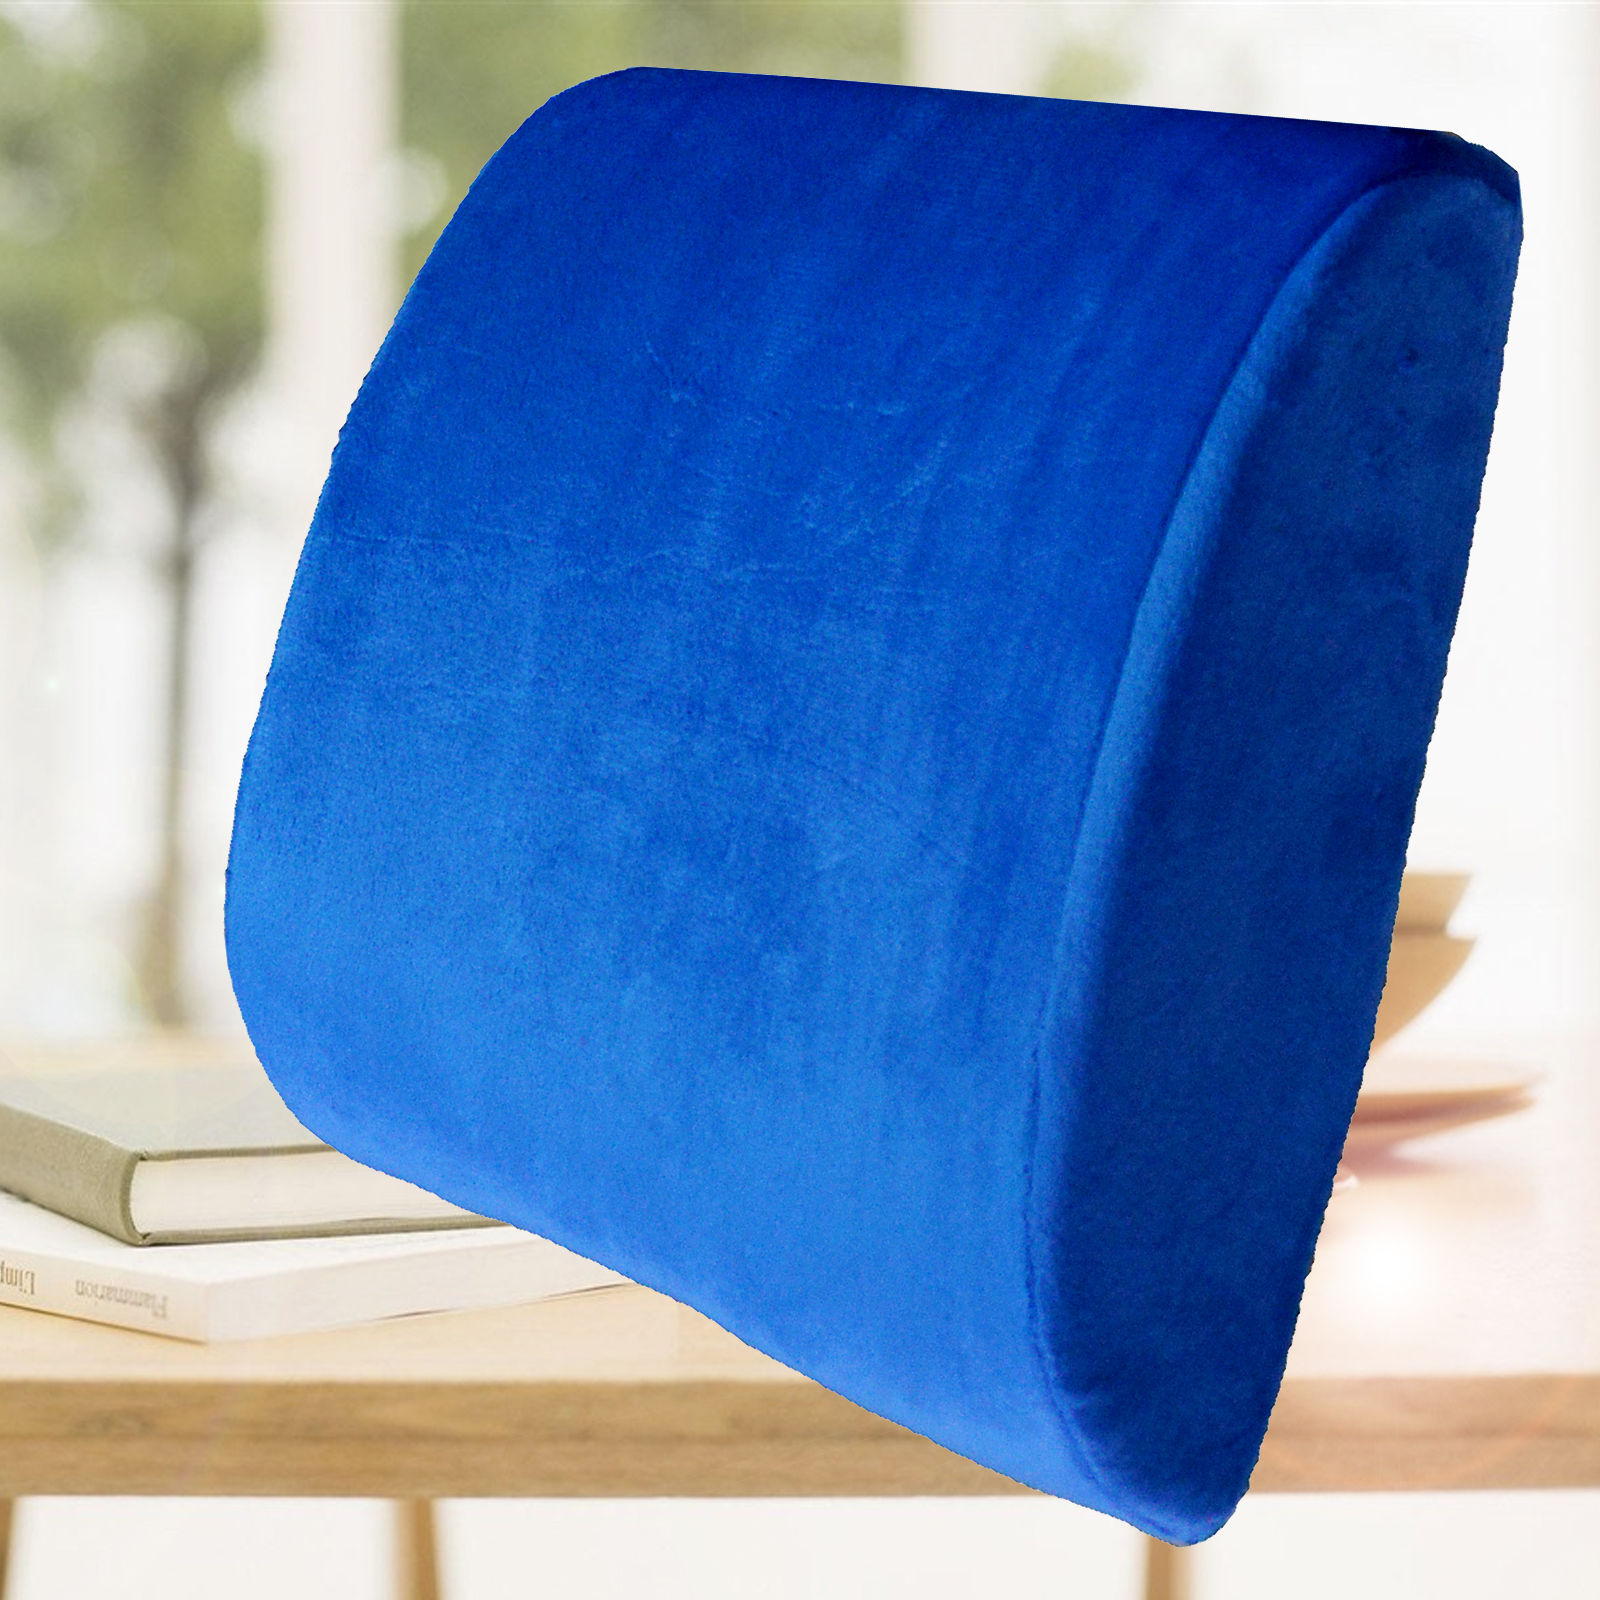 Memory Foam Lumbar Back Support Pillow Sciatica & Pain Relief Seat Chair Cushion Blue and Other Colors